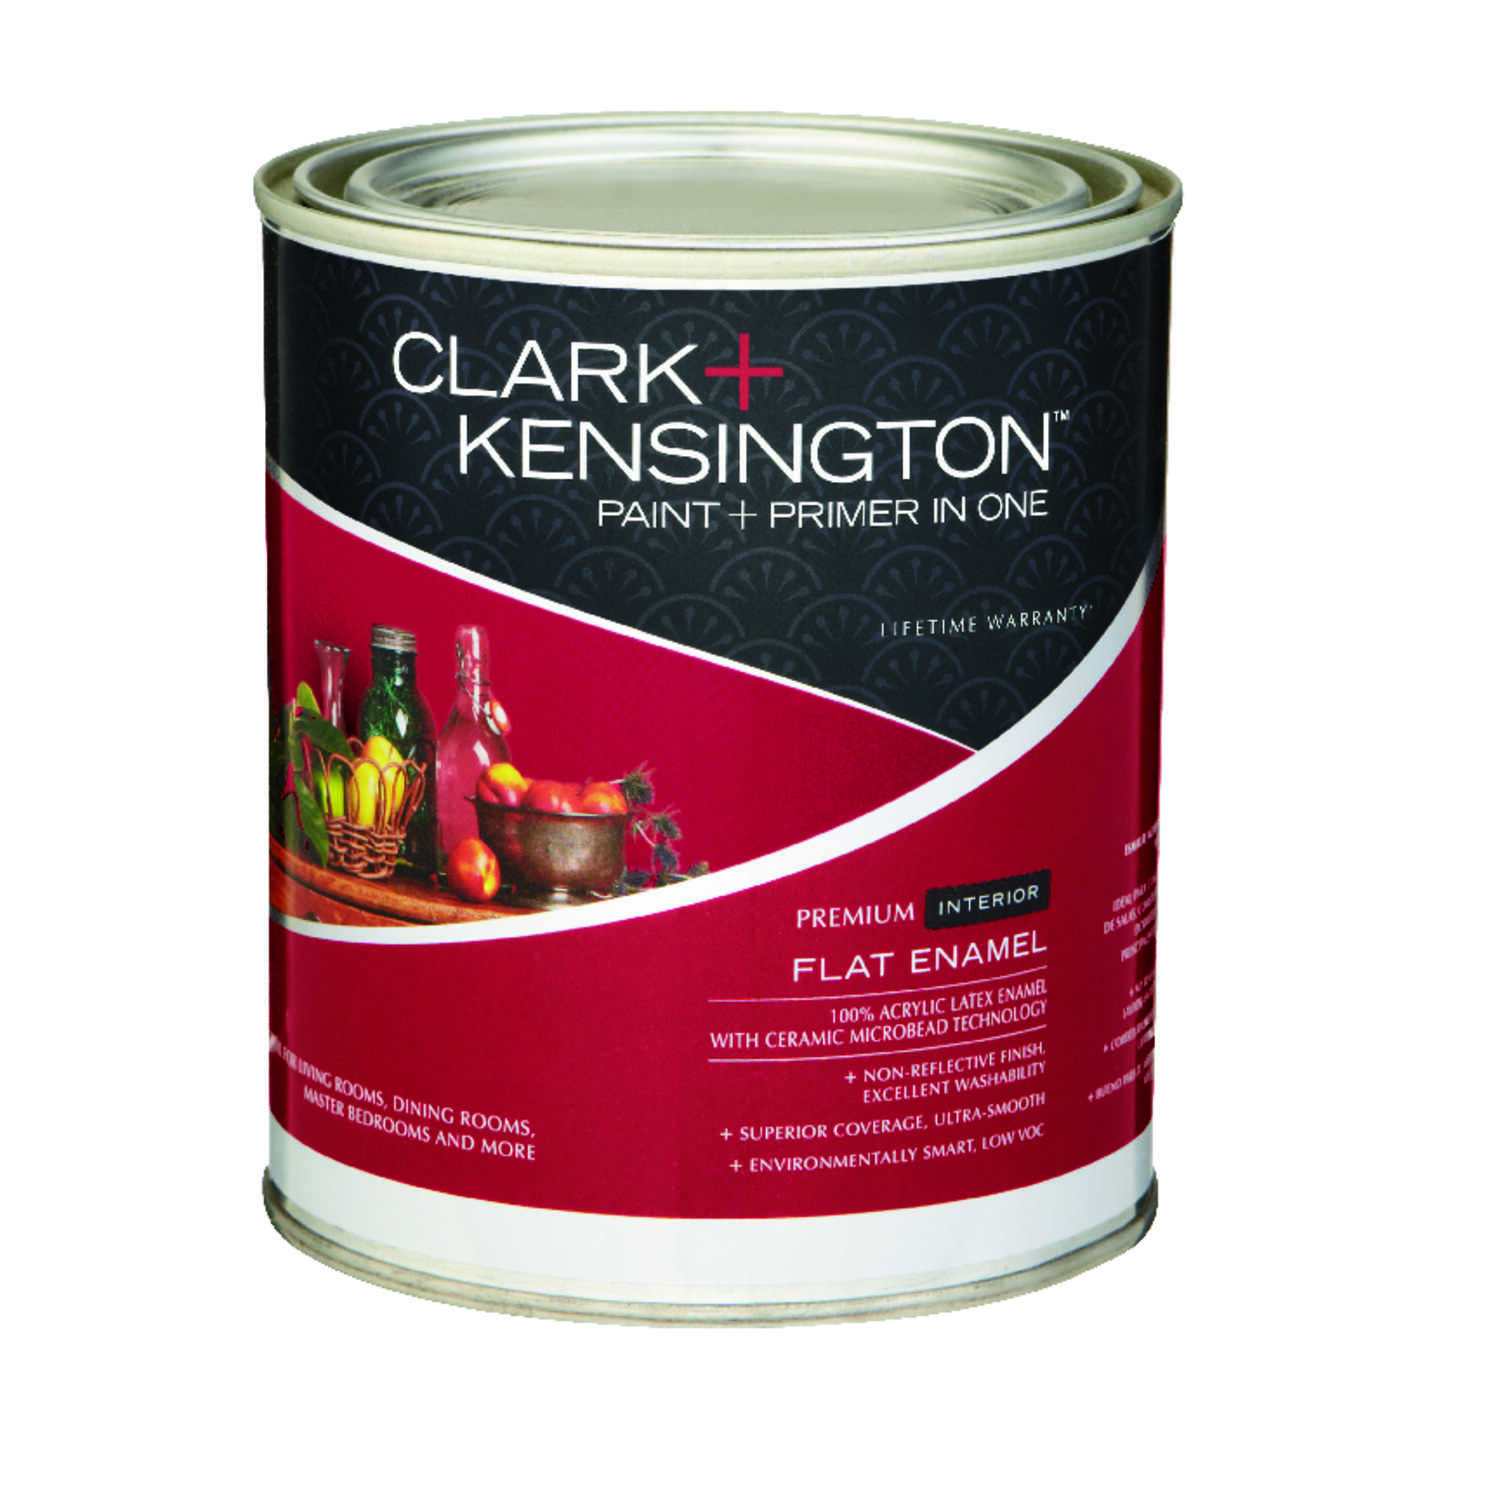 Clark+Kensington  Flat Enamel  Designer White  Acrylic Latex  Paint and Primer  1 qt.